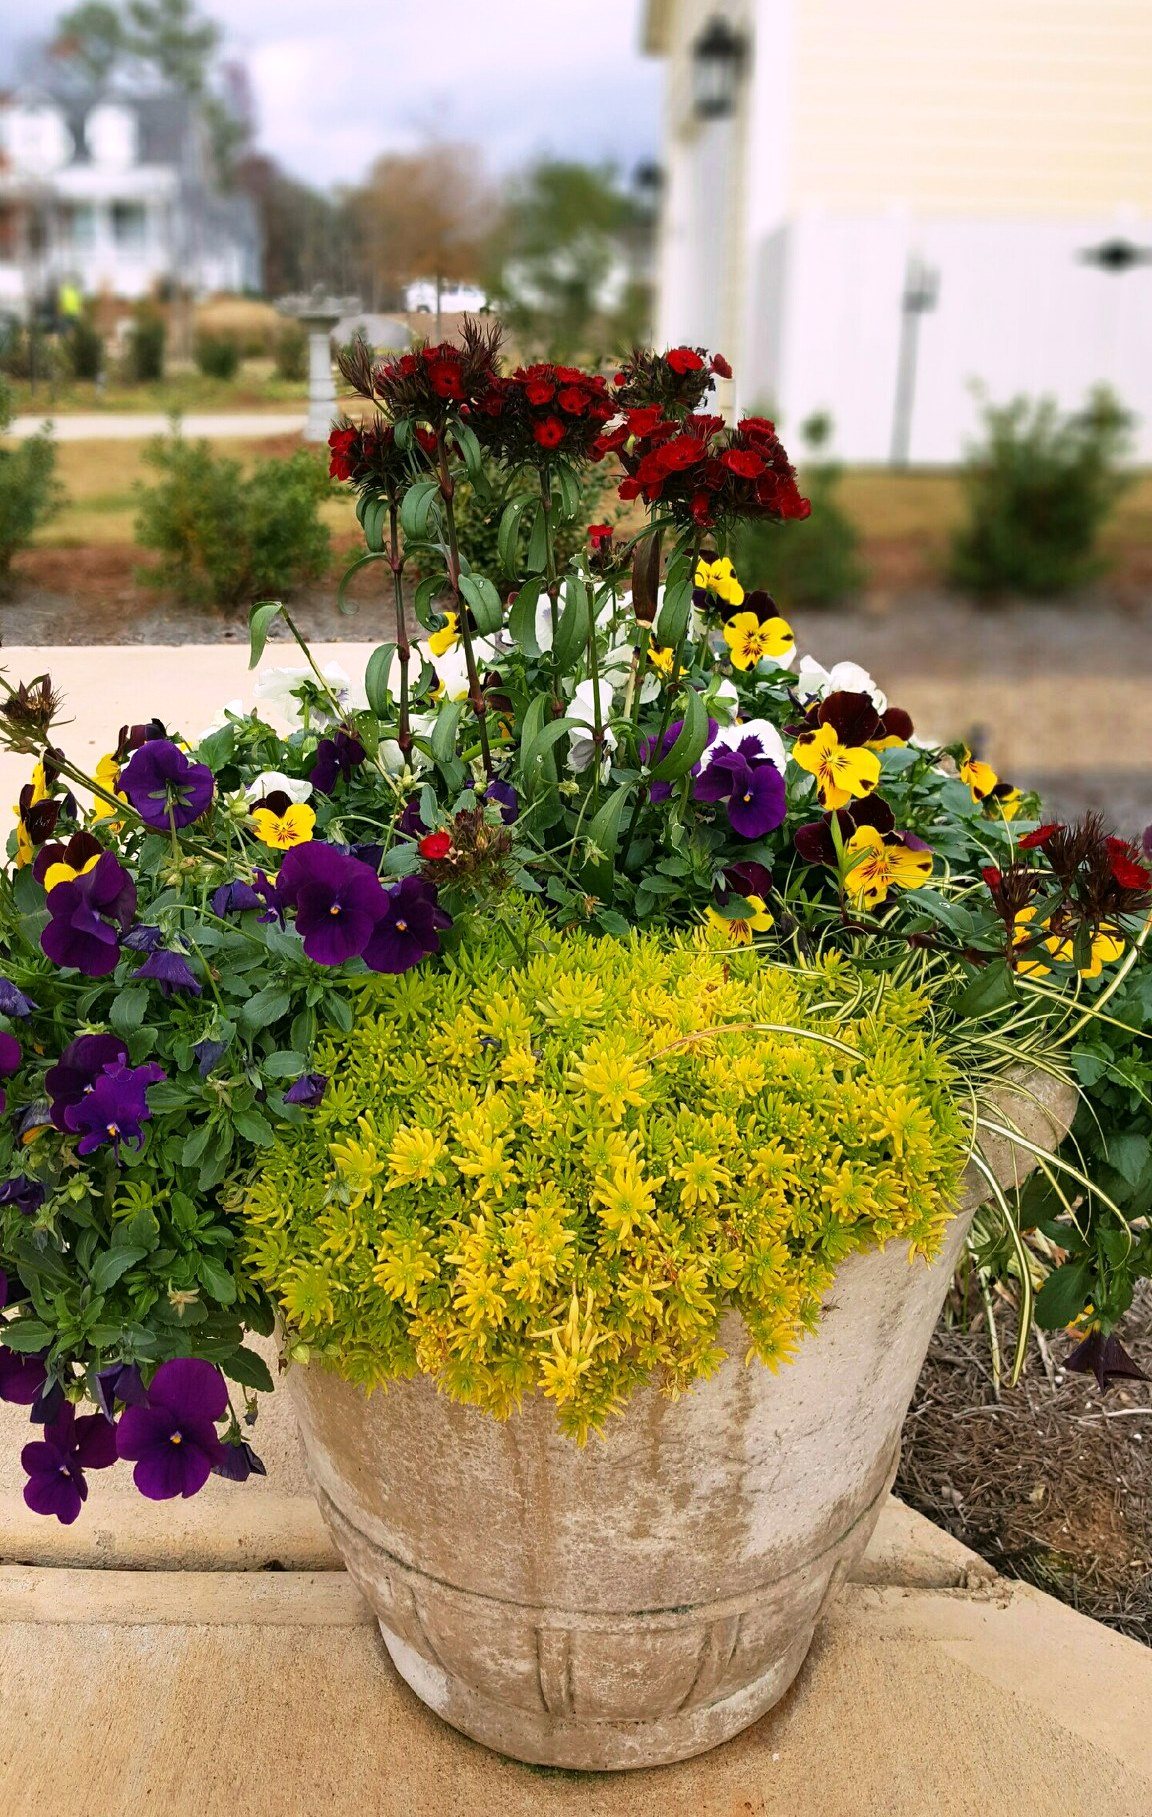 Cool Wave Purple Improved and Cool Wave Sunshine 'N Wine pansies sizzle in this container with Lemon Ball sedum and Dash dianthus.